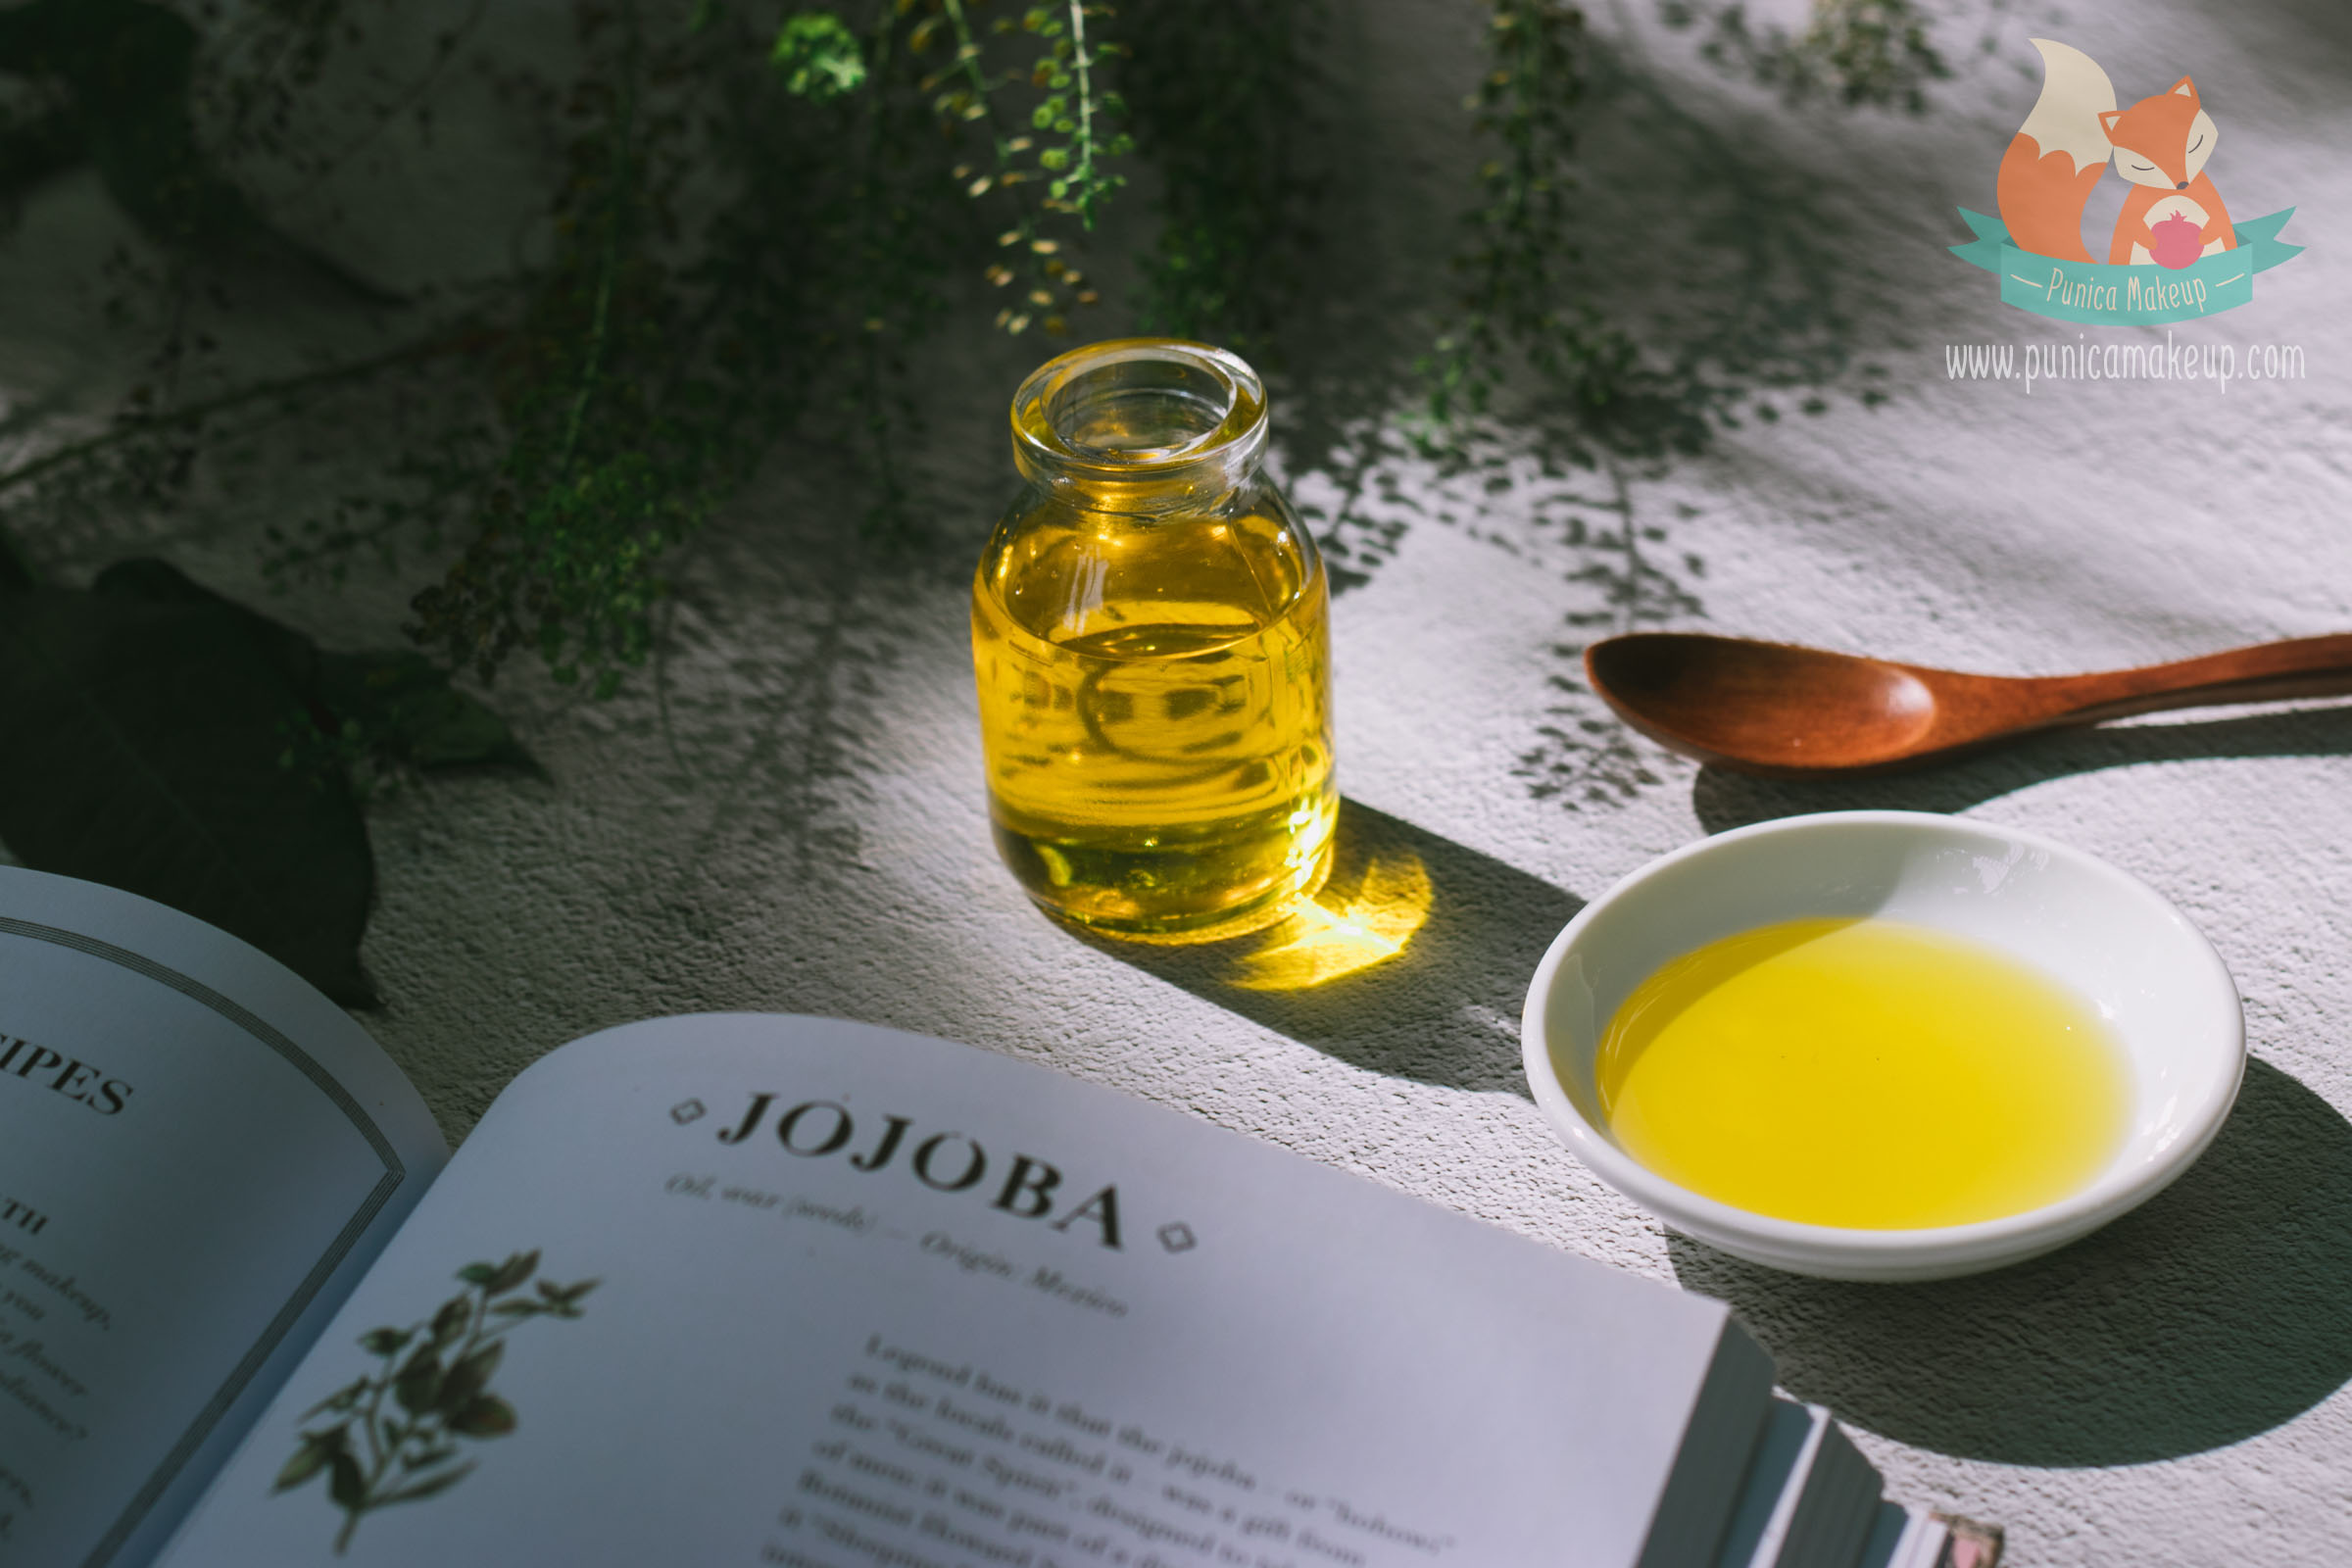 jojoba oil is good for acne prone skin